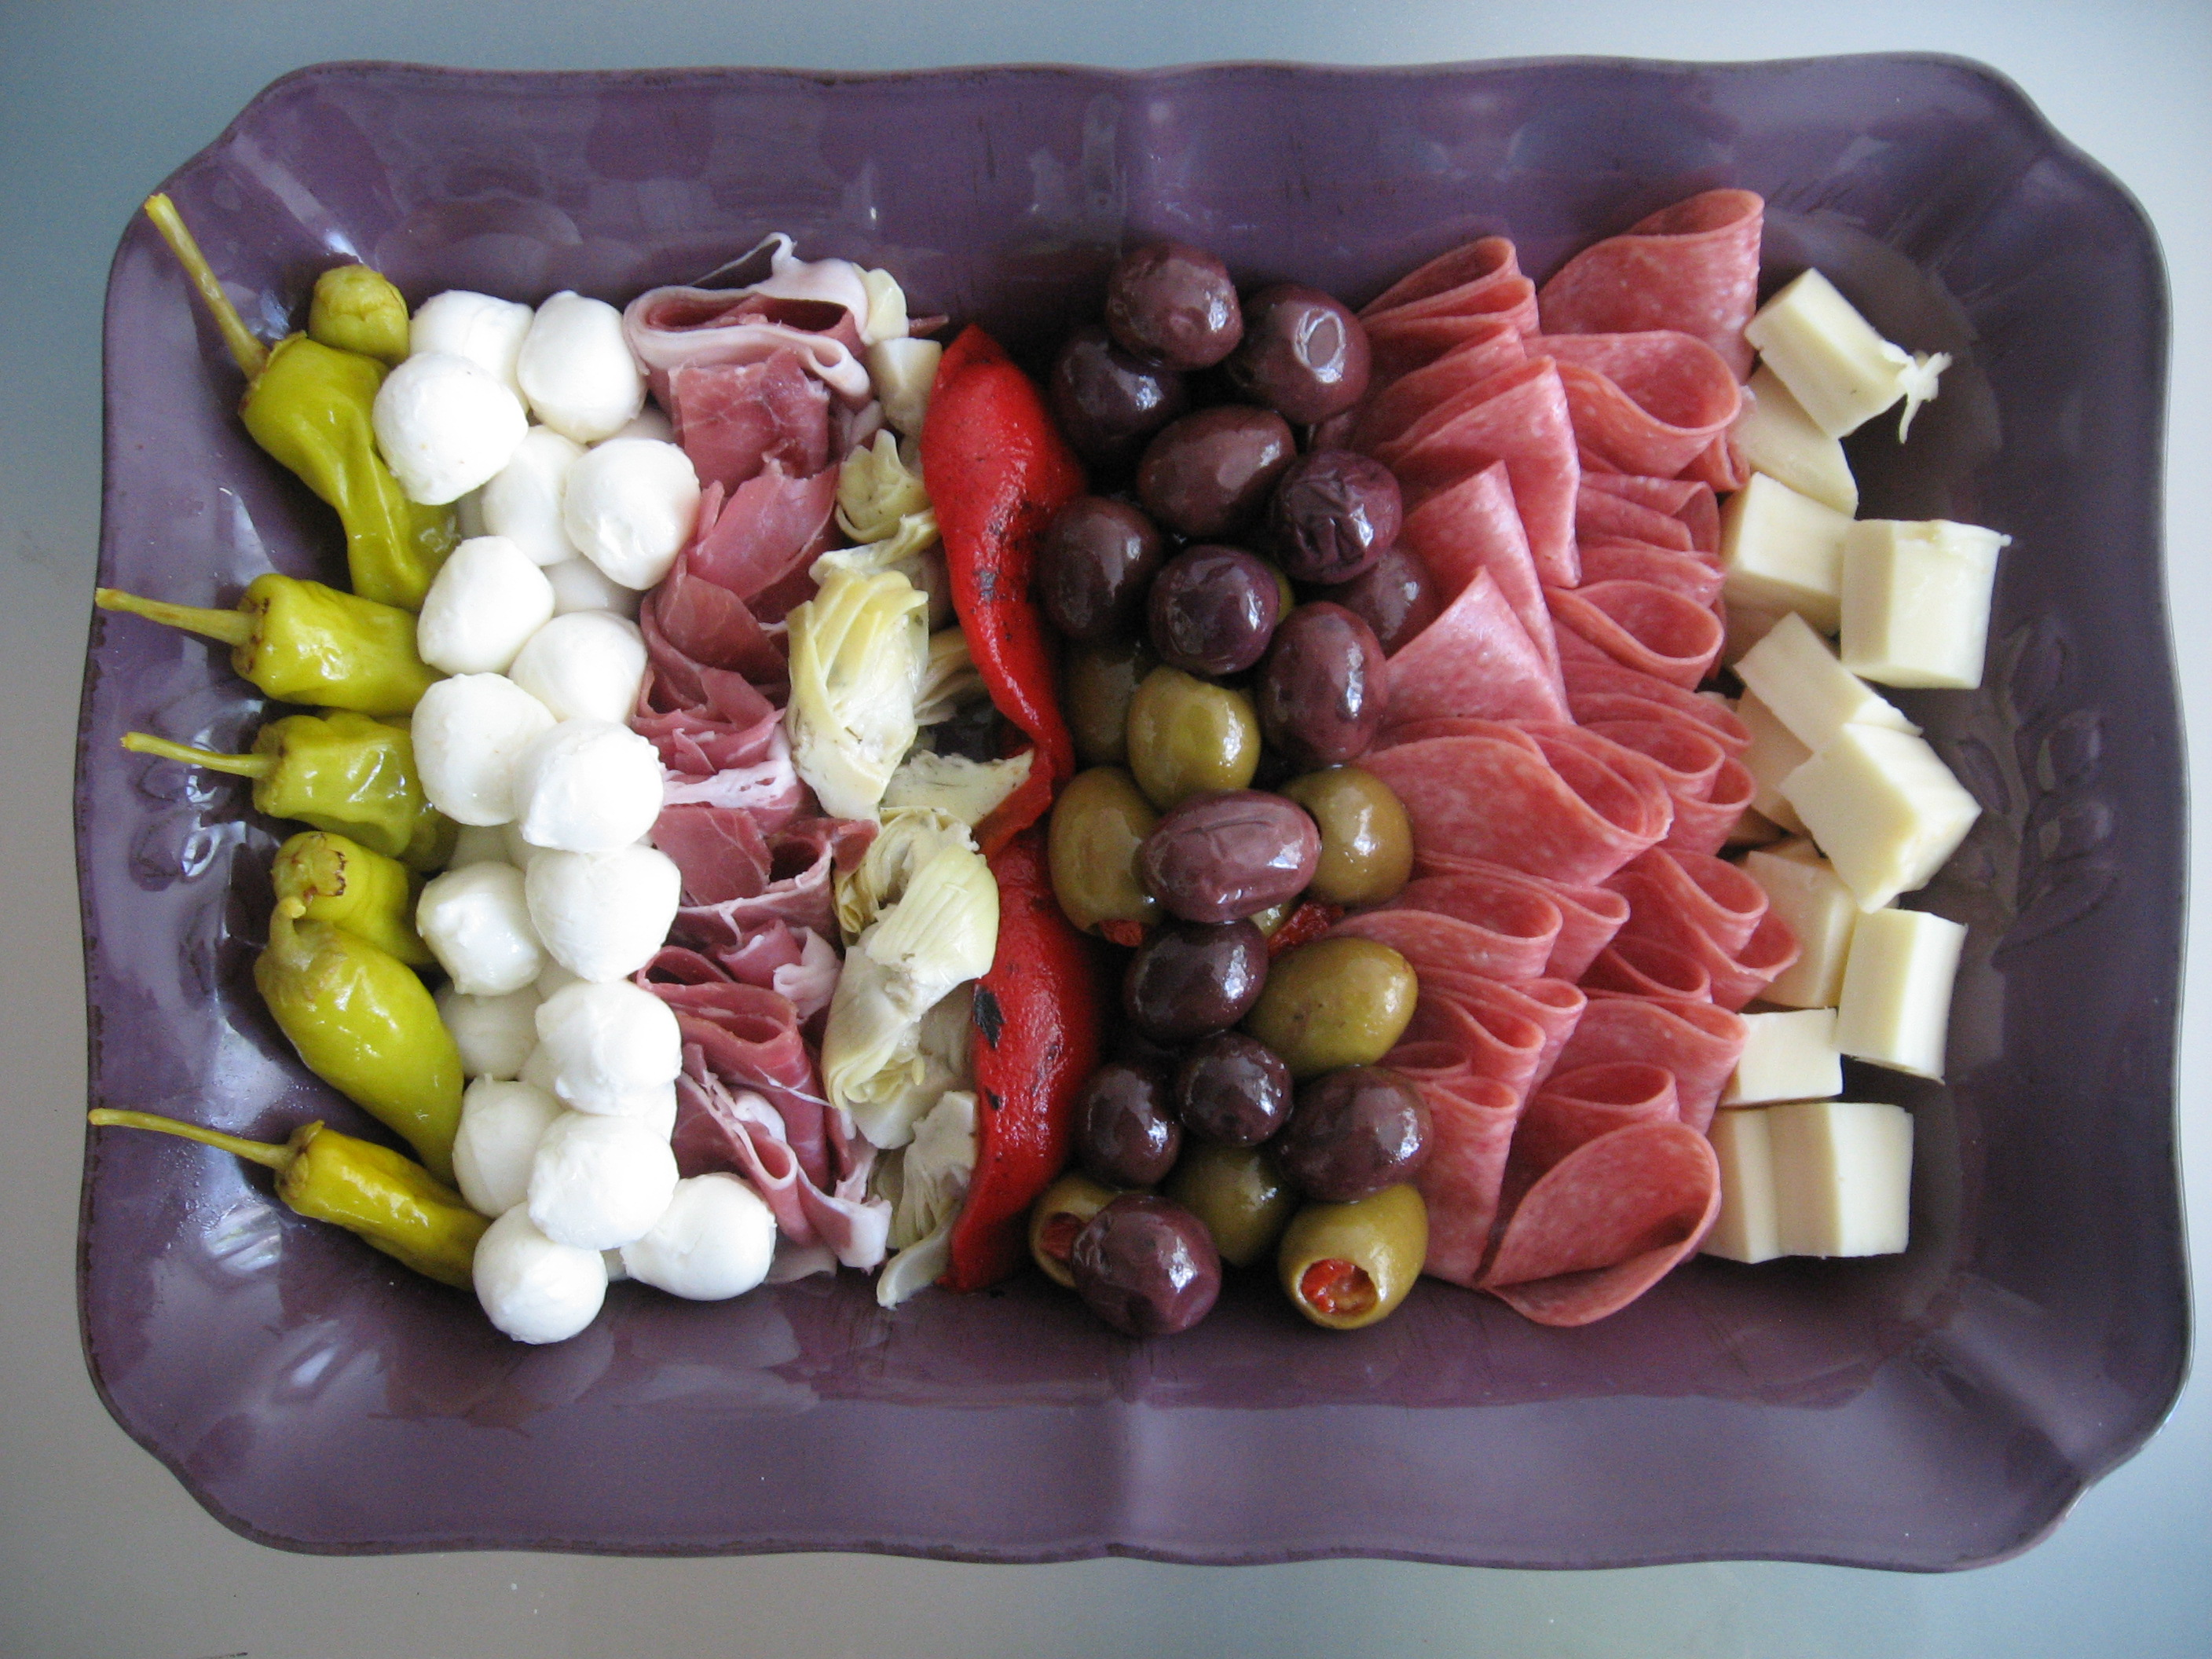 anatomy of an antipasti platter, or, how to set the bar impossibly